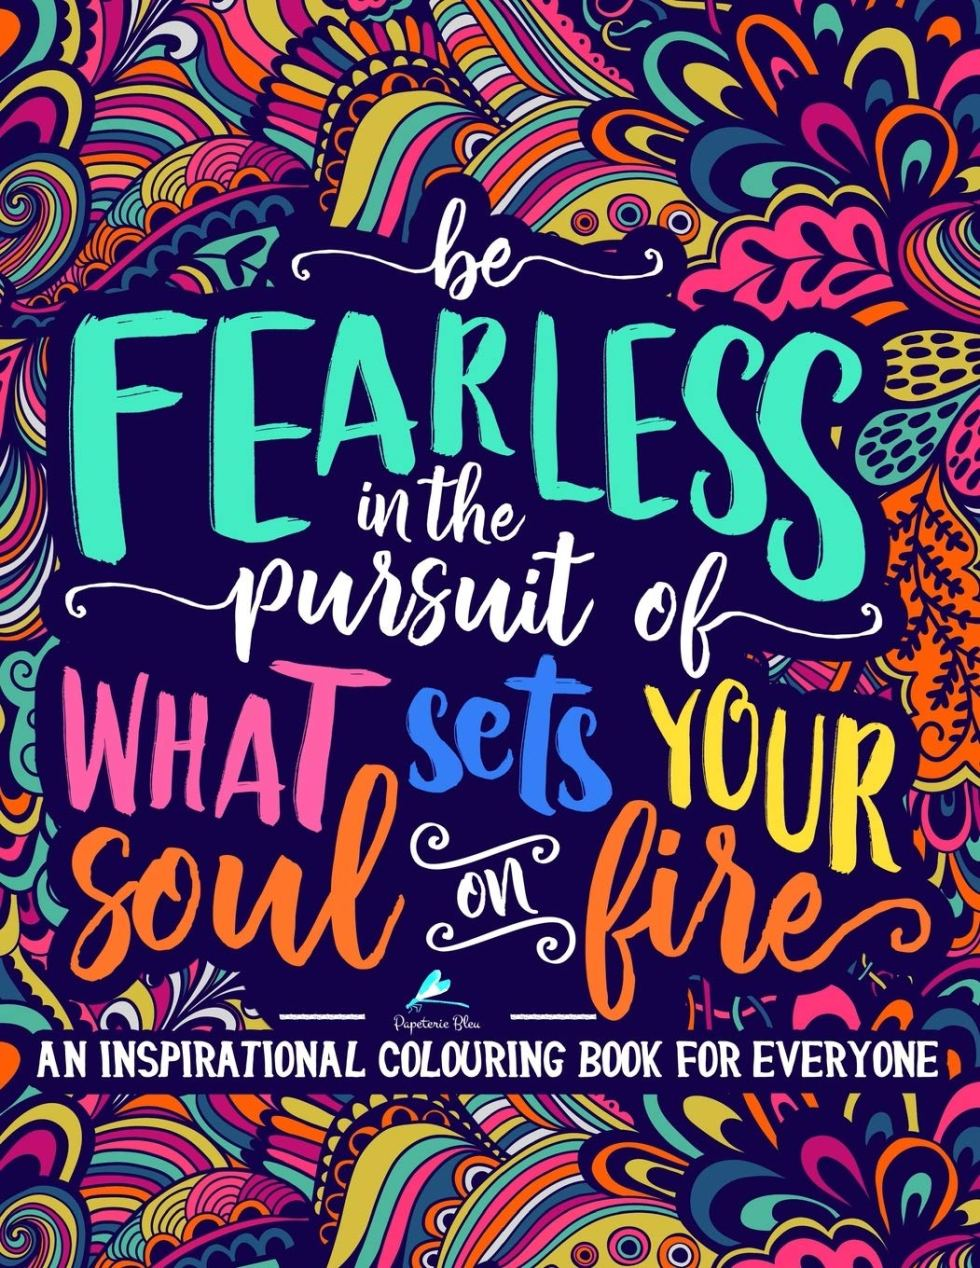 Fearless coloring book inspirational gift